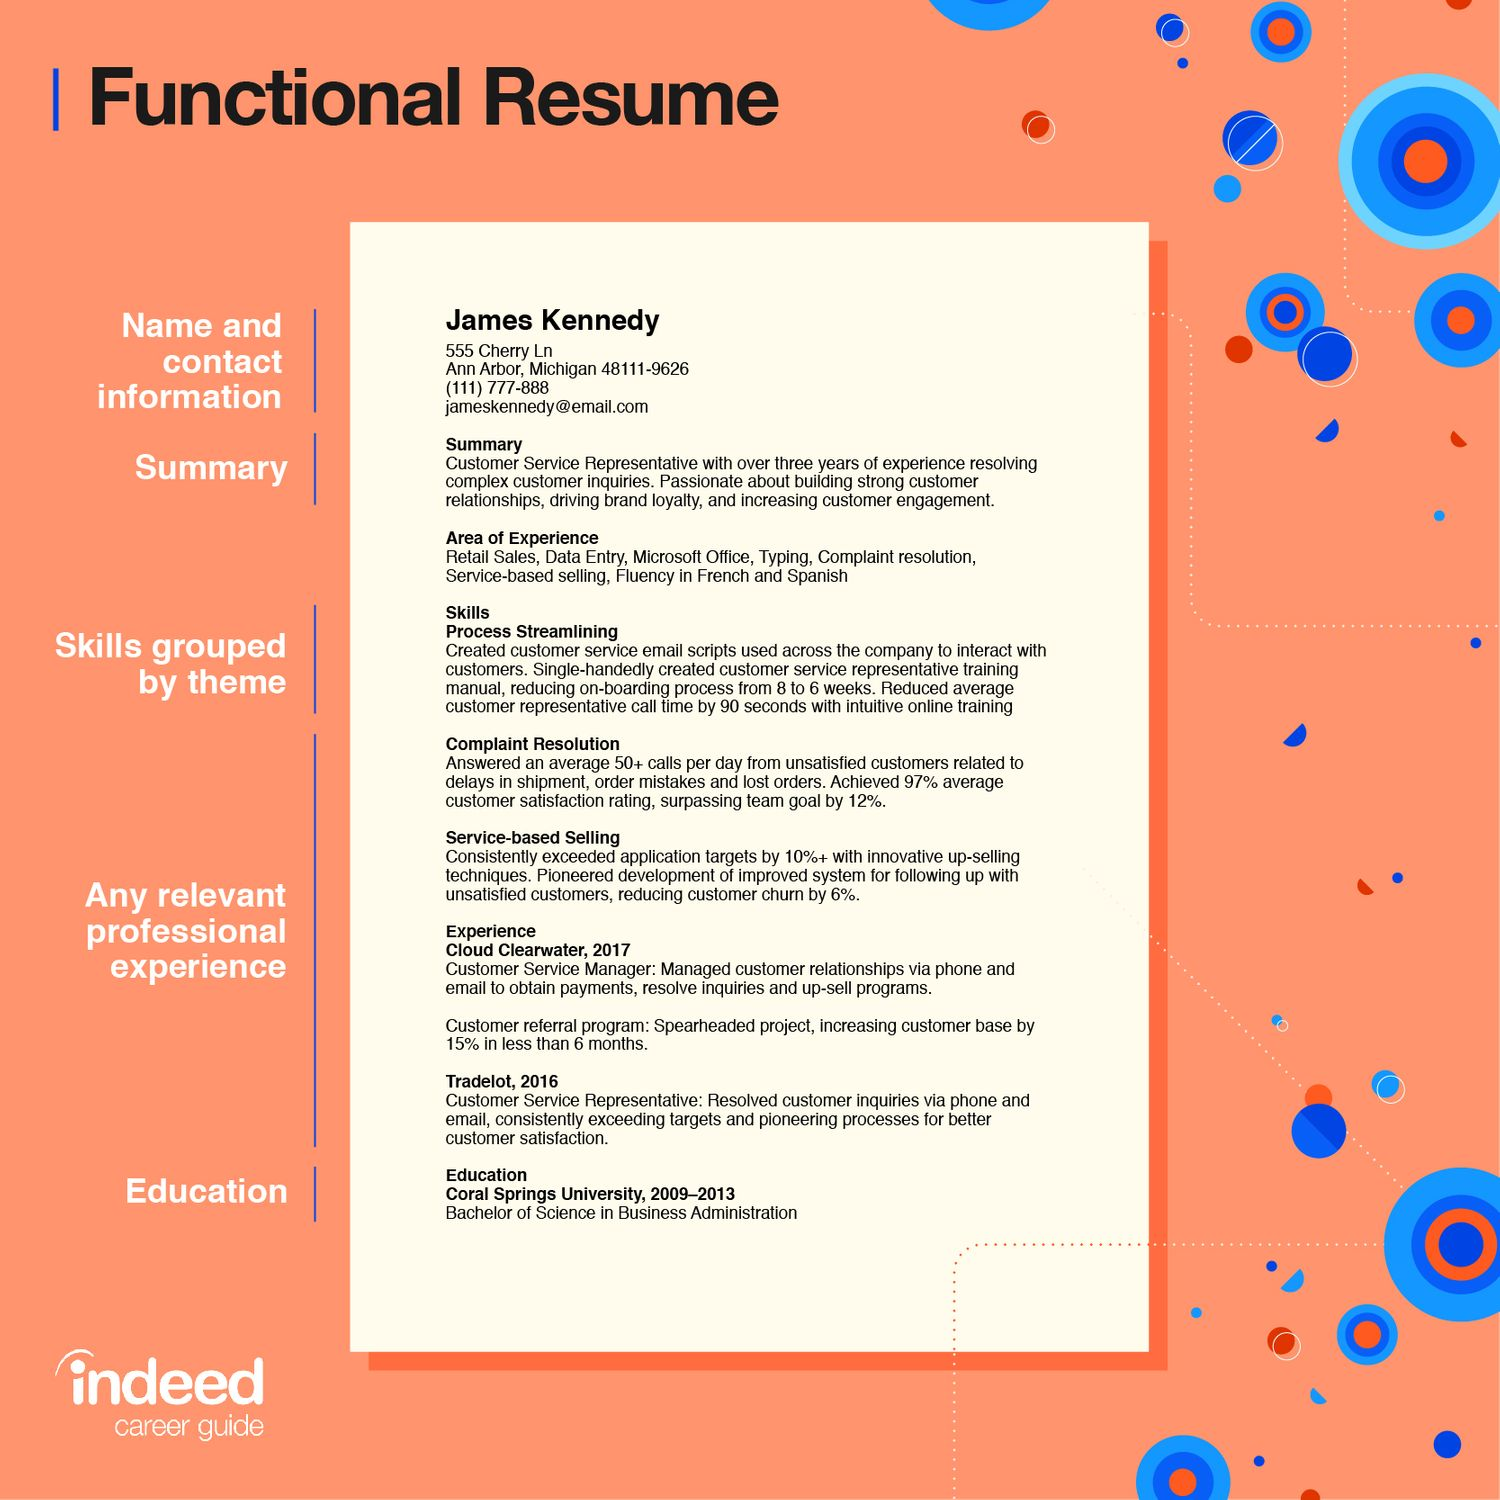 best skills to include on resume with examples indeed common for resized self taught Resume Common Skills For Resume